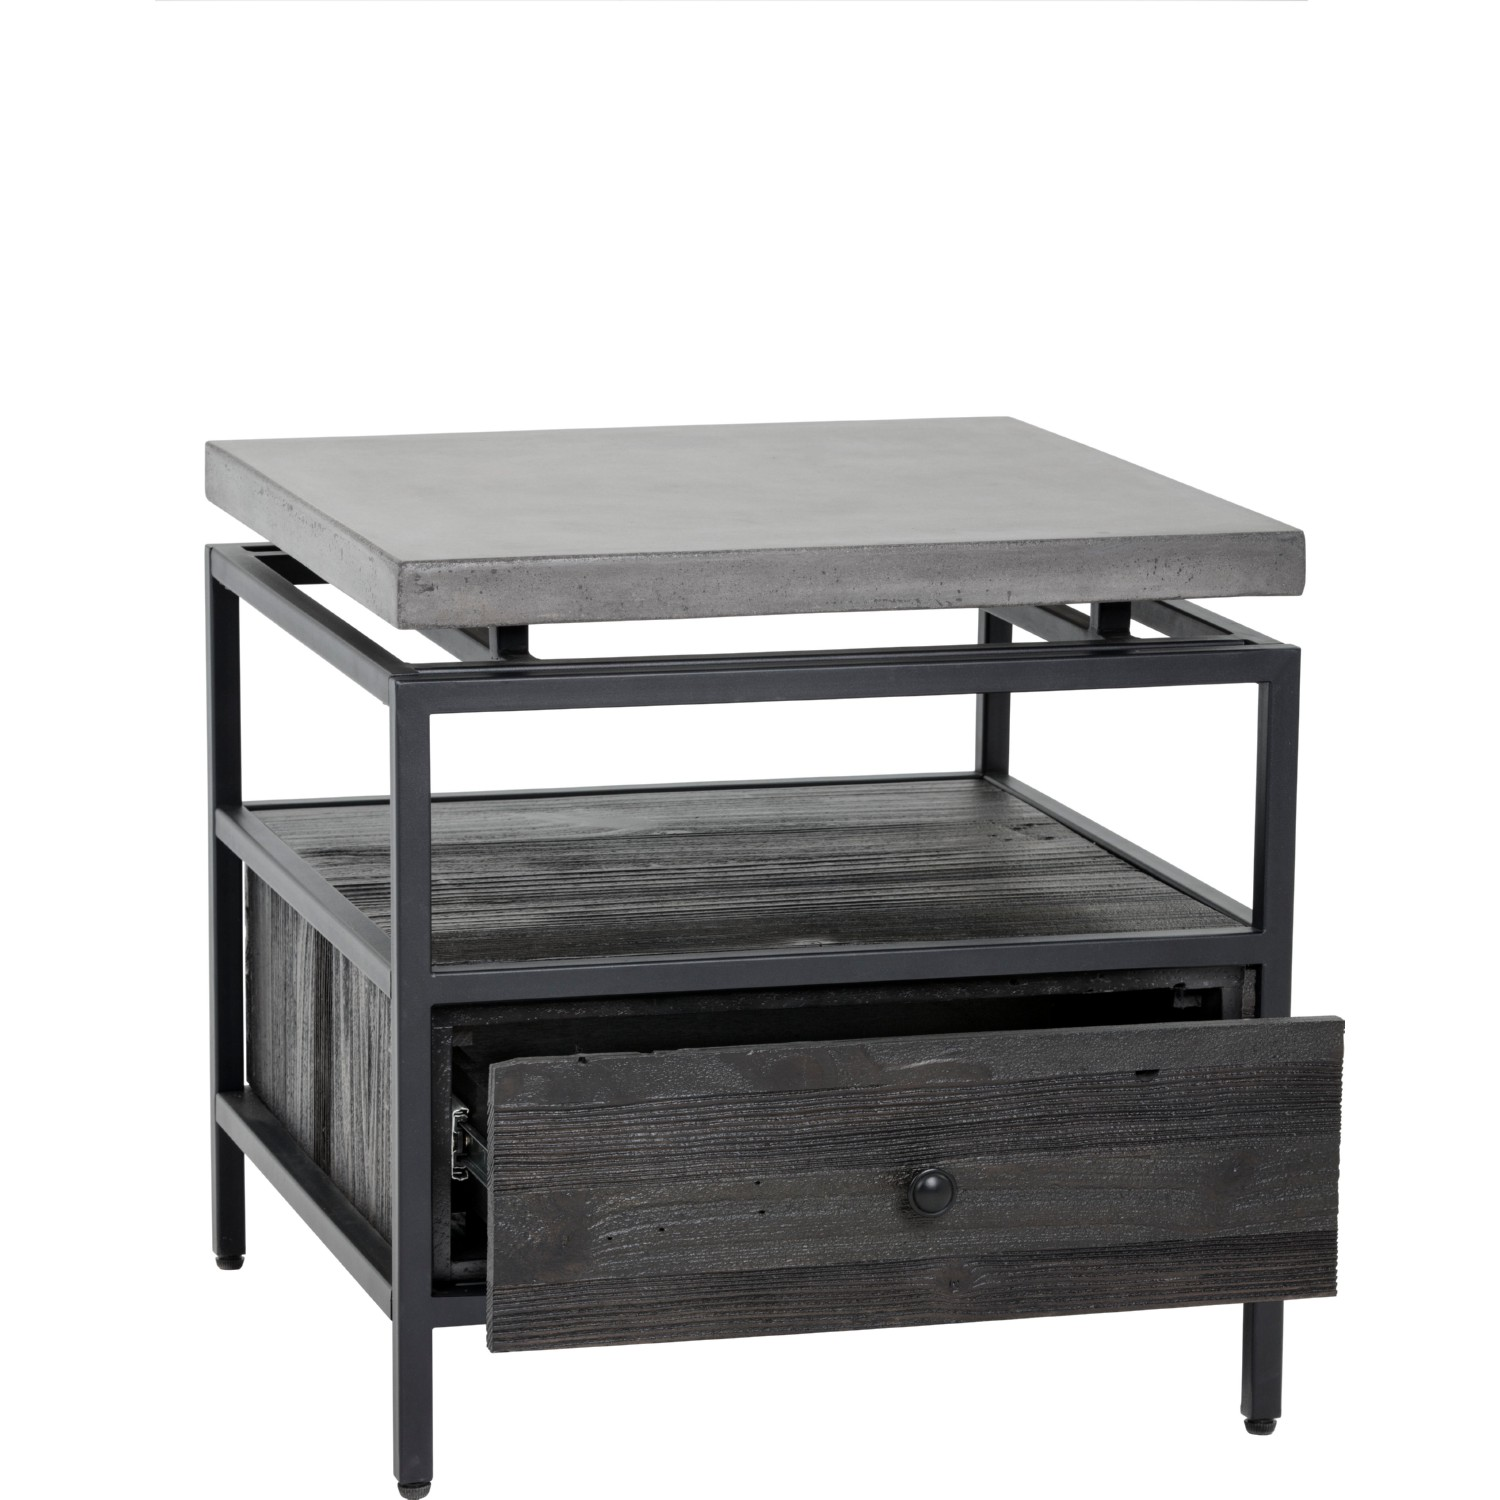 Sunpan Norwood End Table in Coffee Bean Wood w Concrete Top